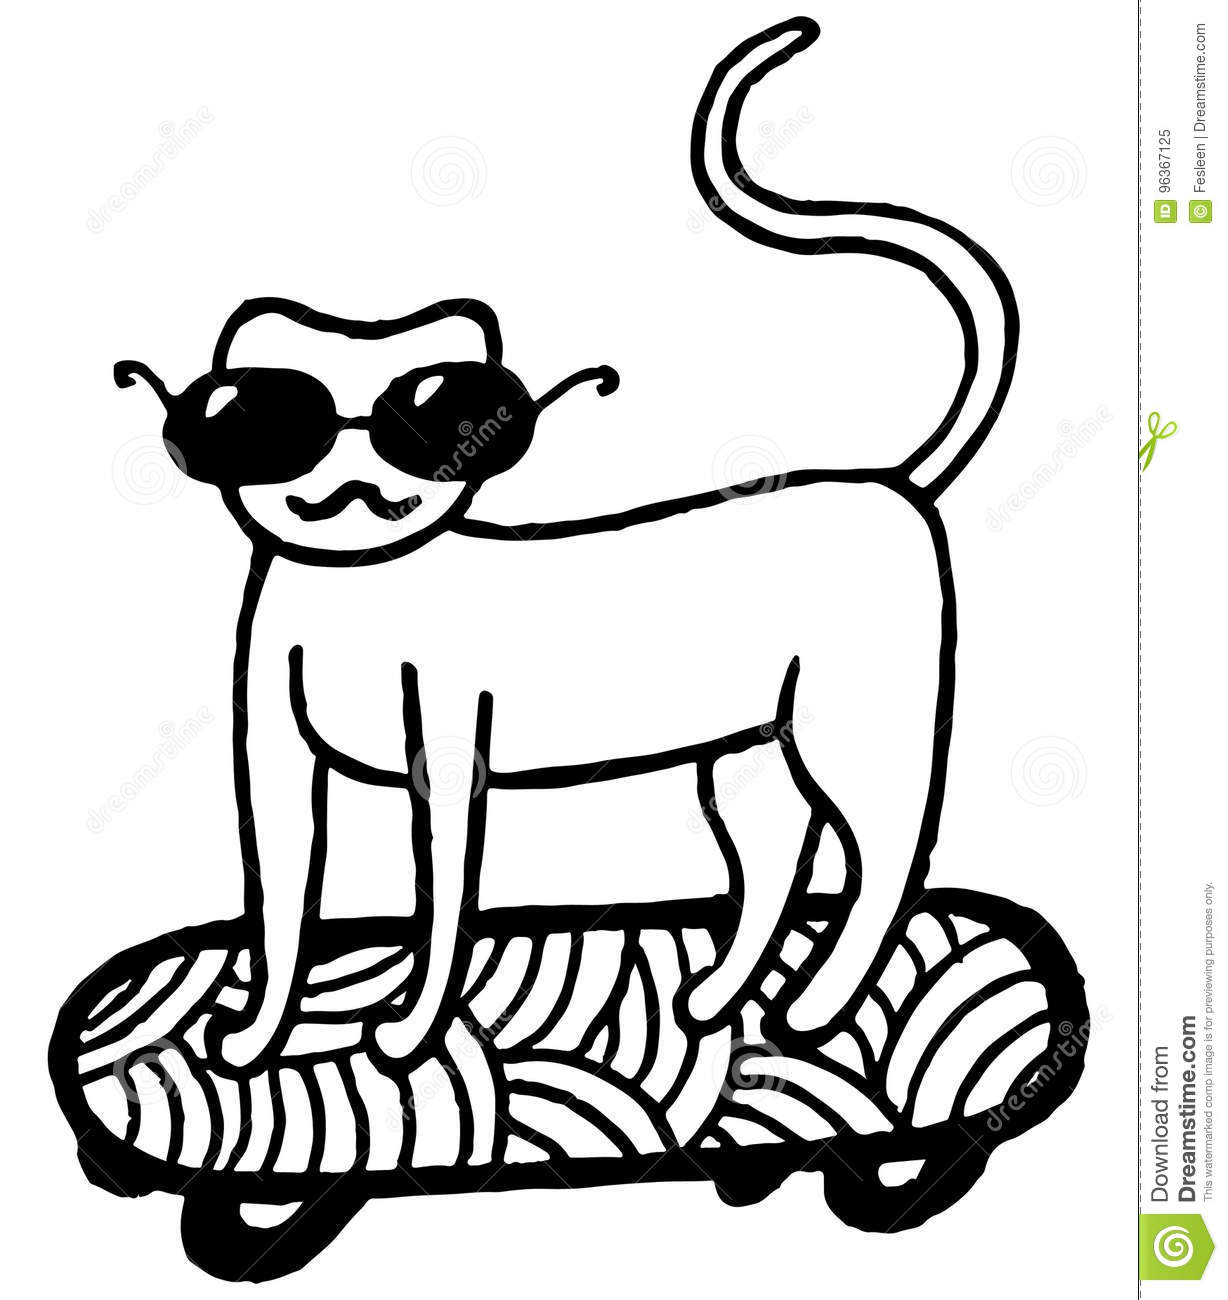 Coloring Page With Cat On Skateboard Stock Vector - Illustration of ...